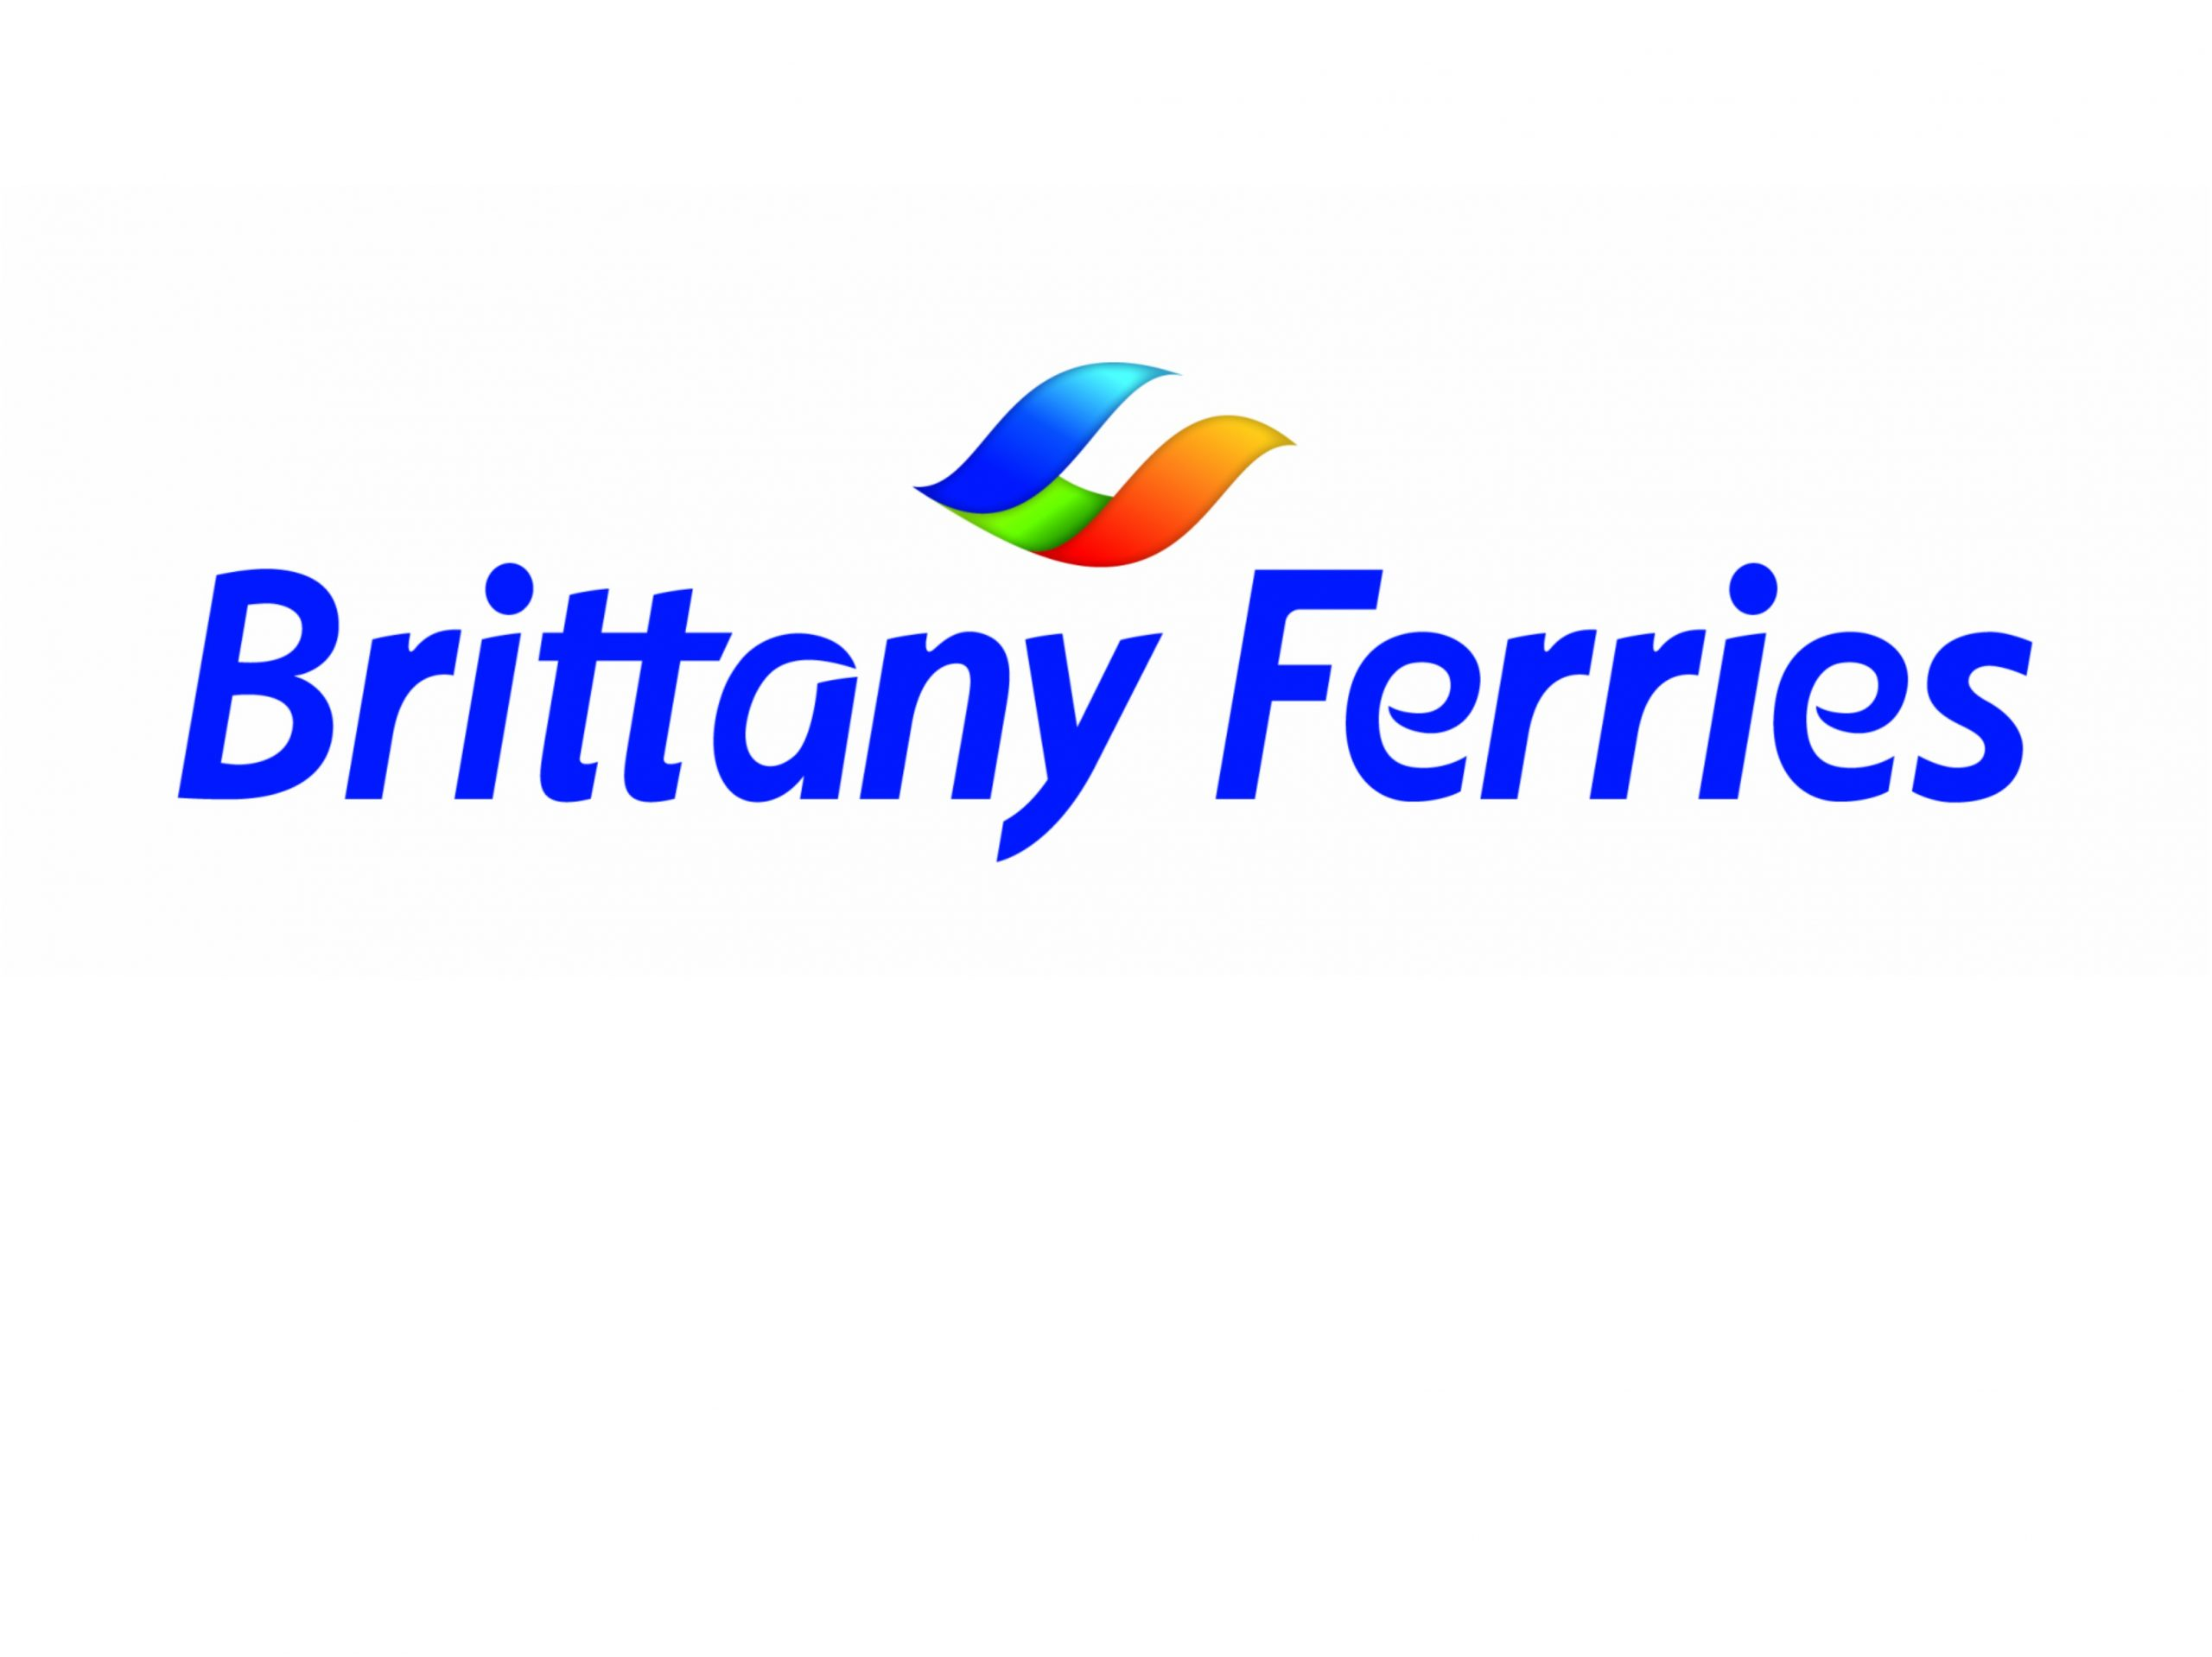 Disabled Passengers – Make the Most of Your Travel with Brittany Ferries